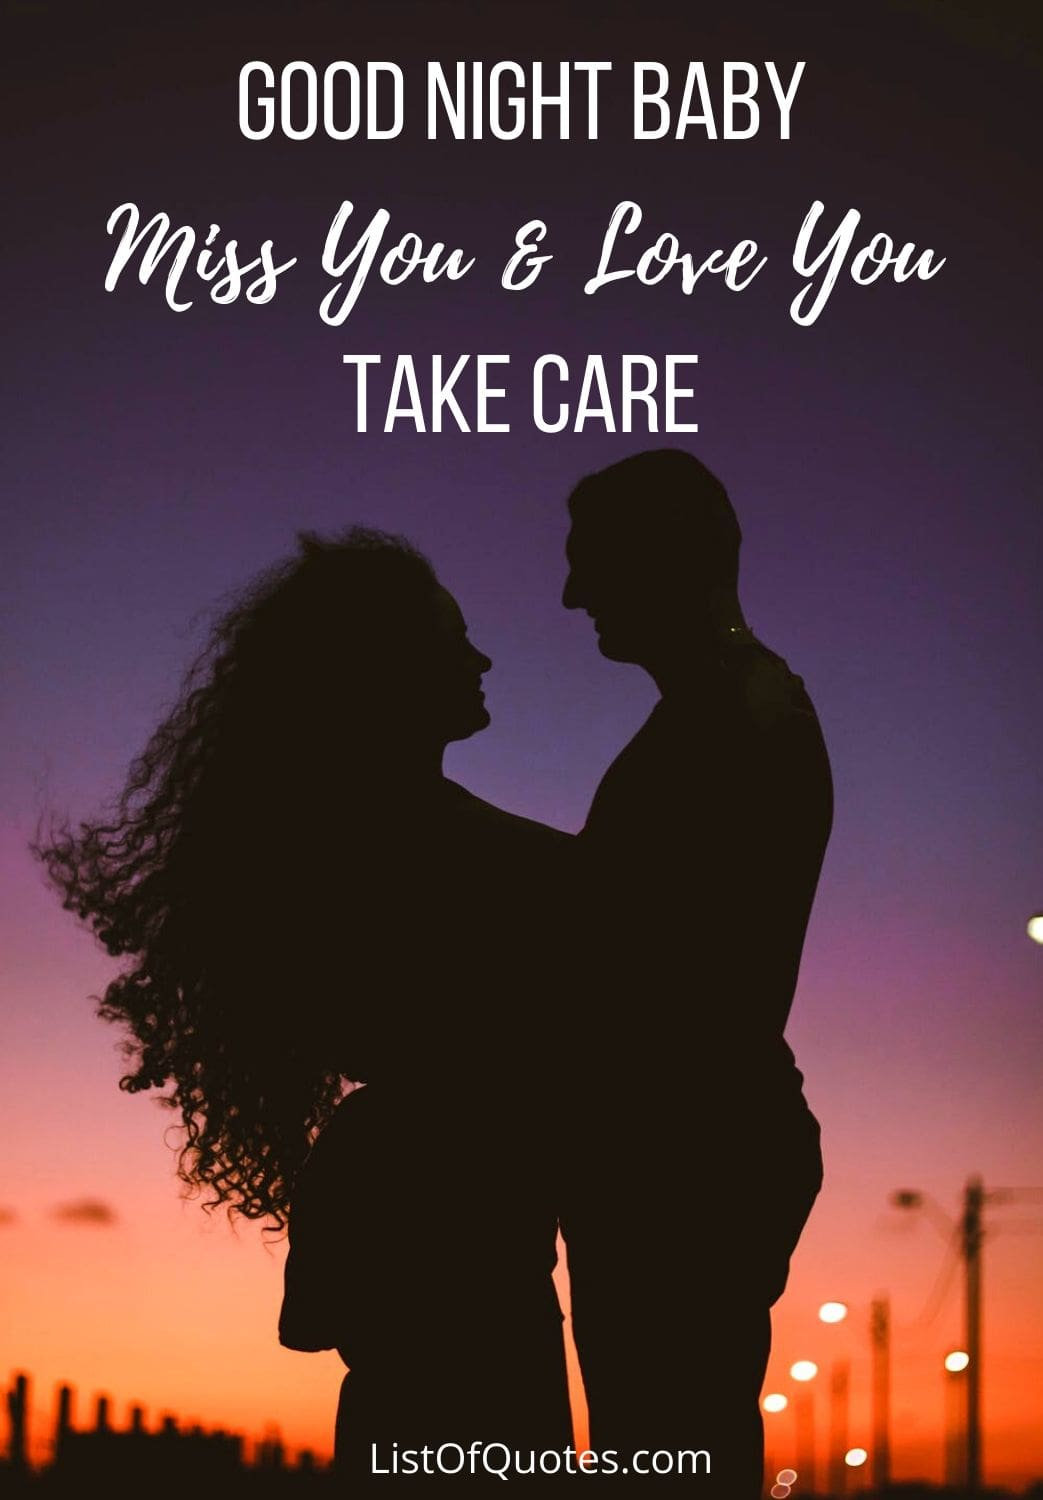 Romantic Good Night Sweet Dreams Images Quotes/Messages For Boyfriend/Girlfriend(Free Download)